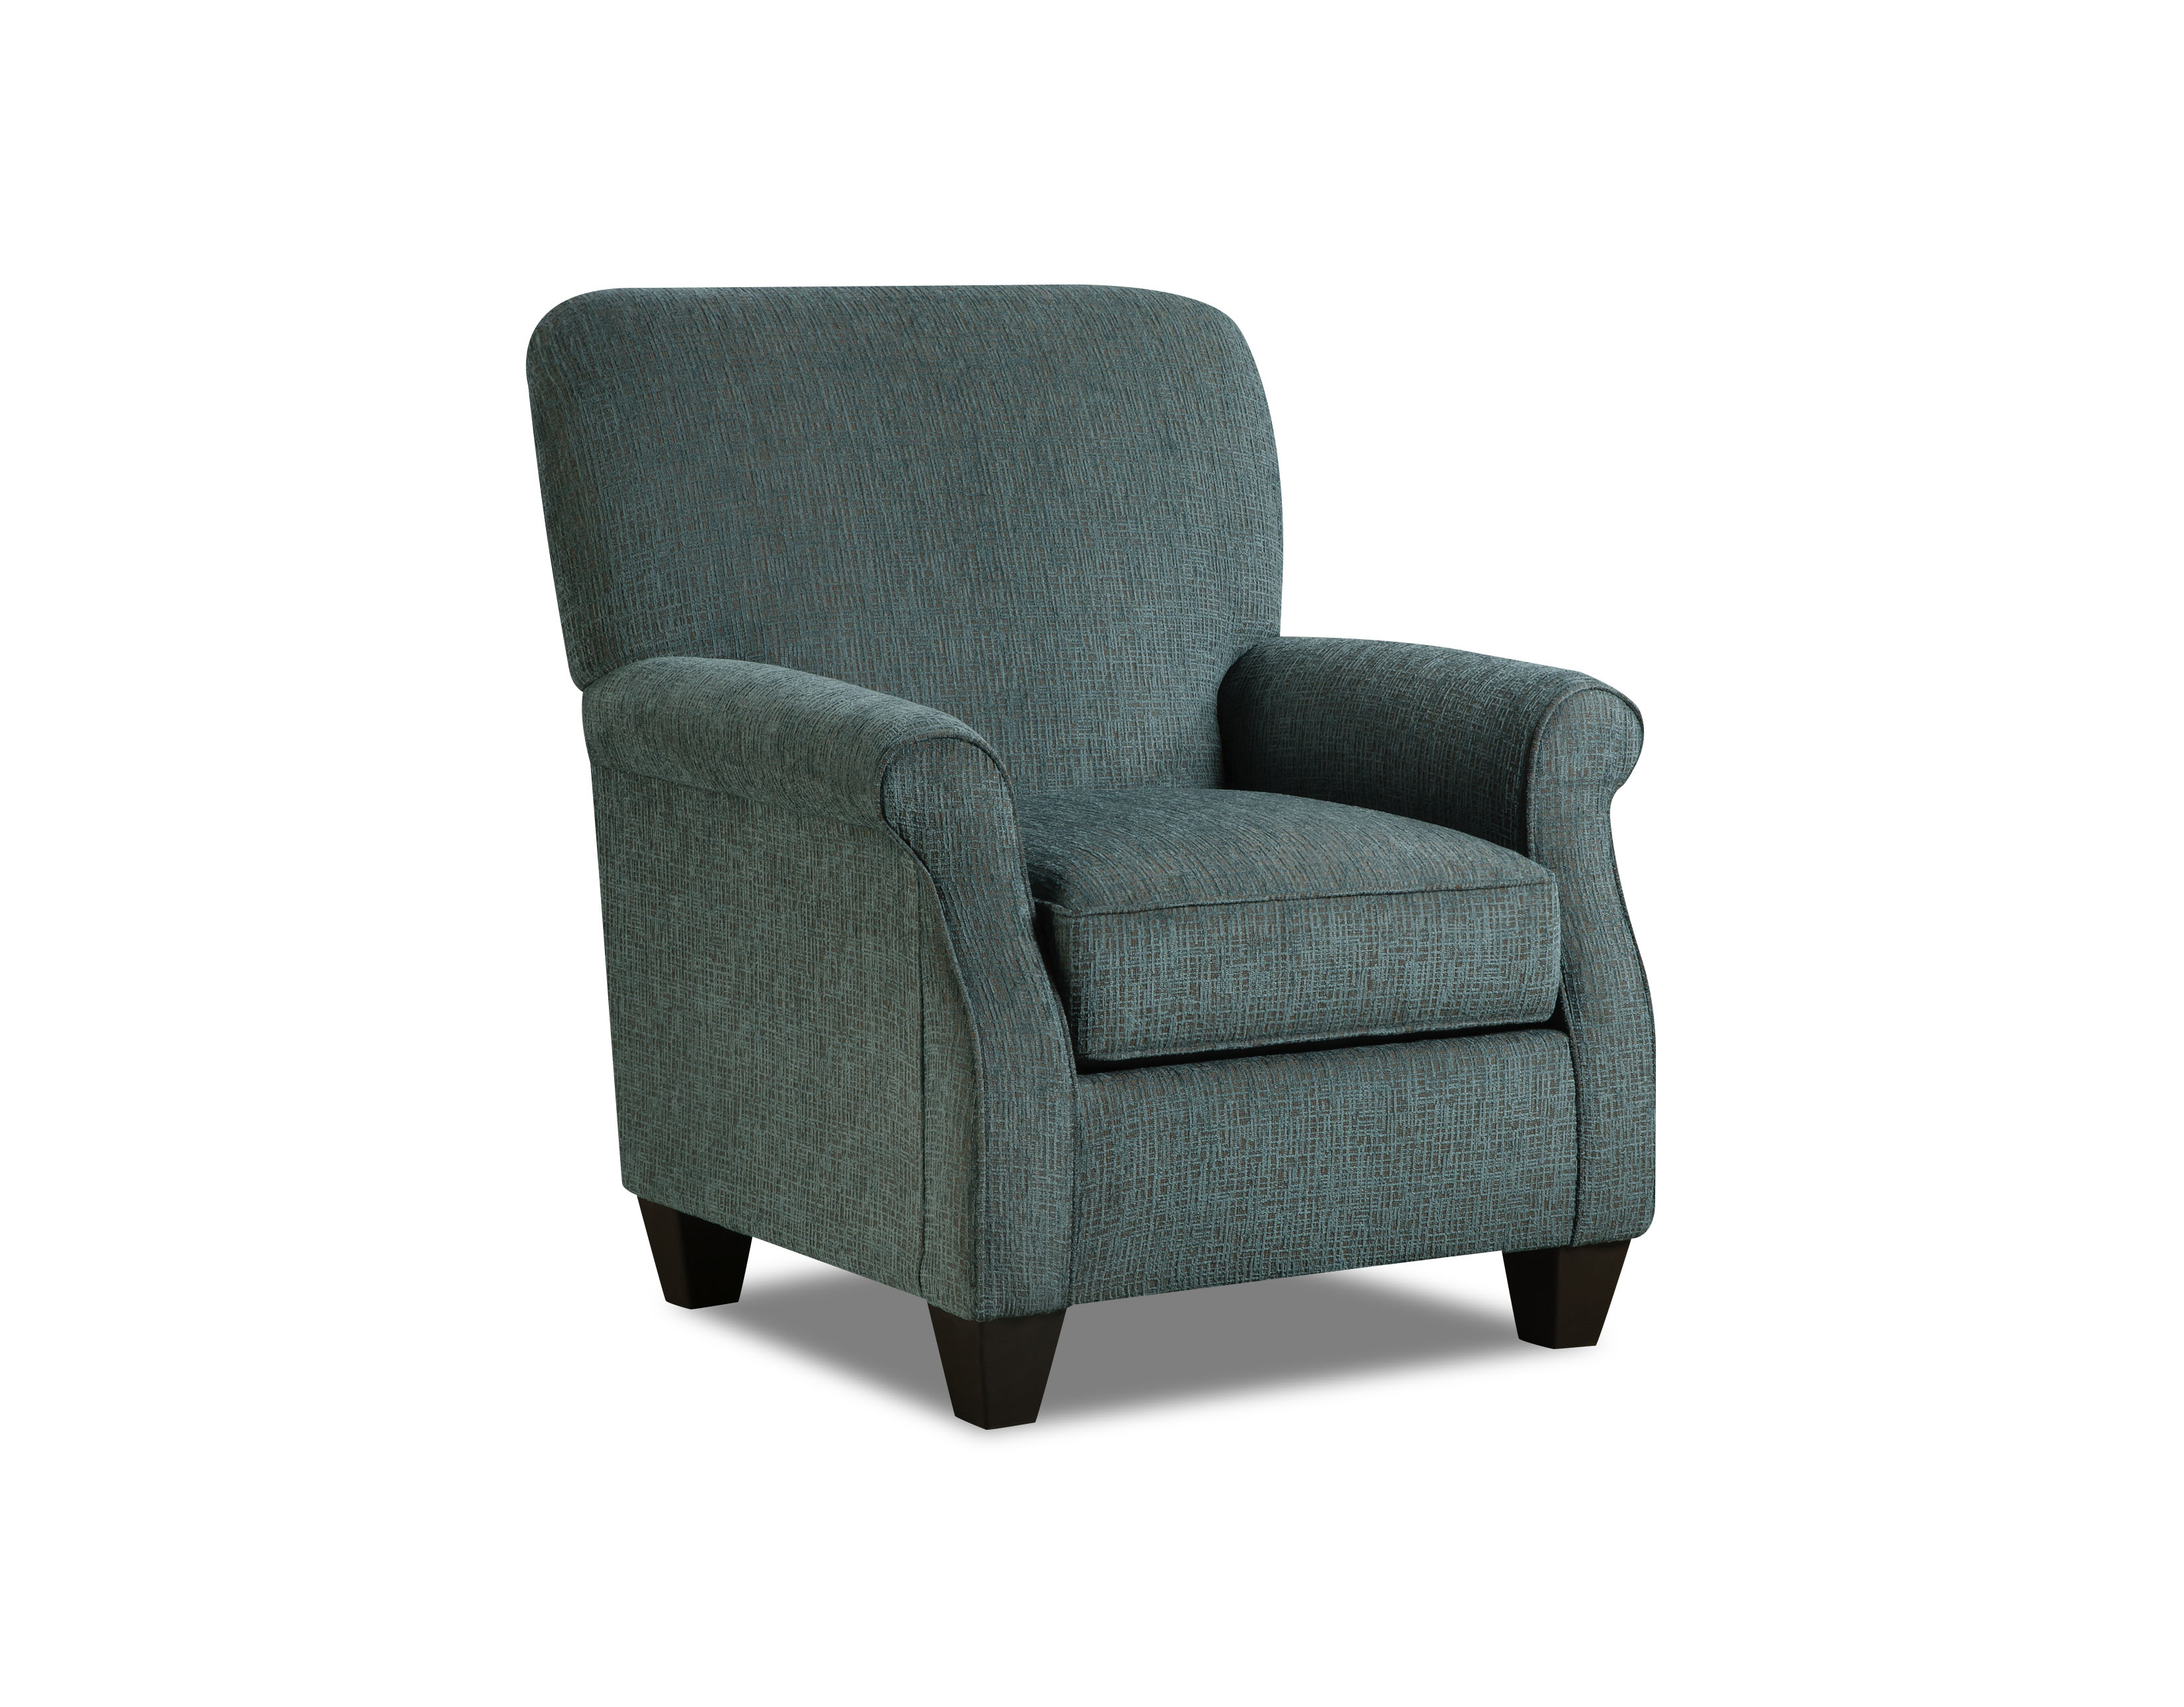 1030 Perth Teal Accent Chair American Furniture